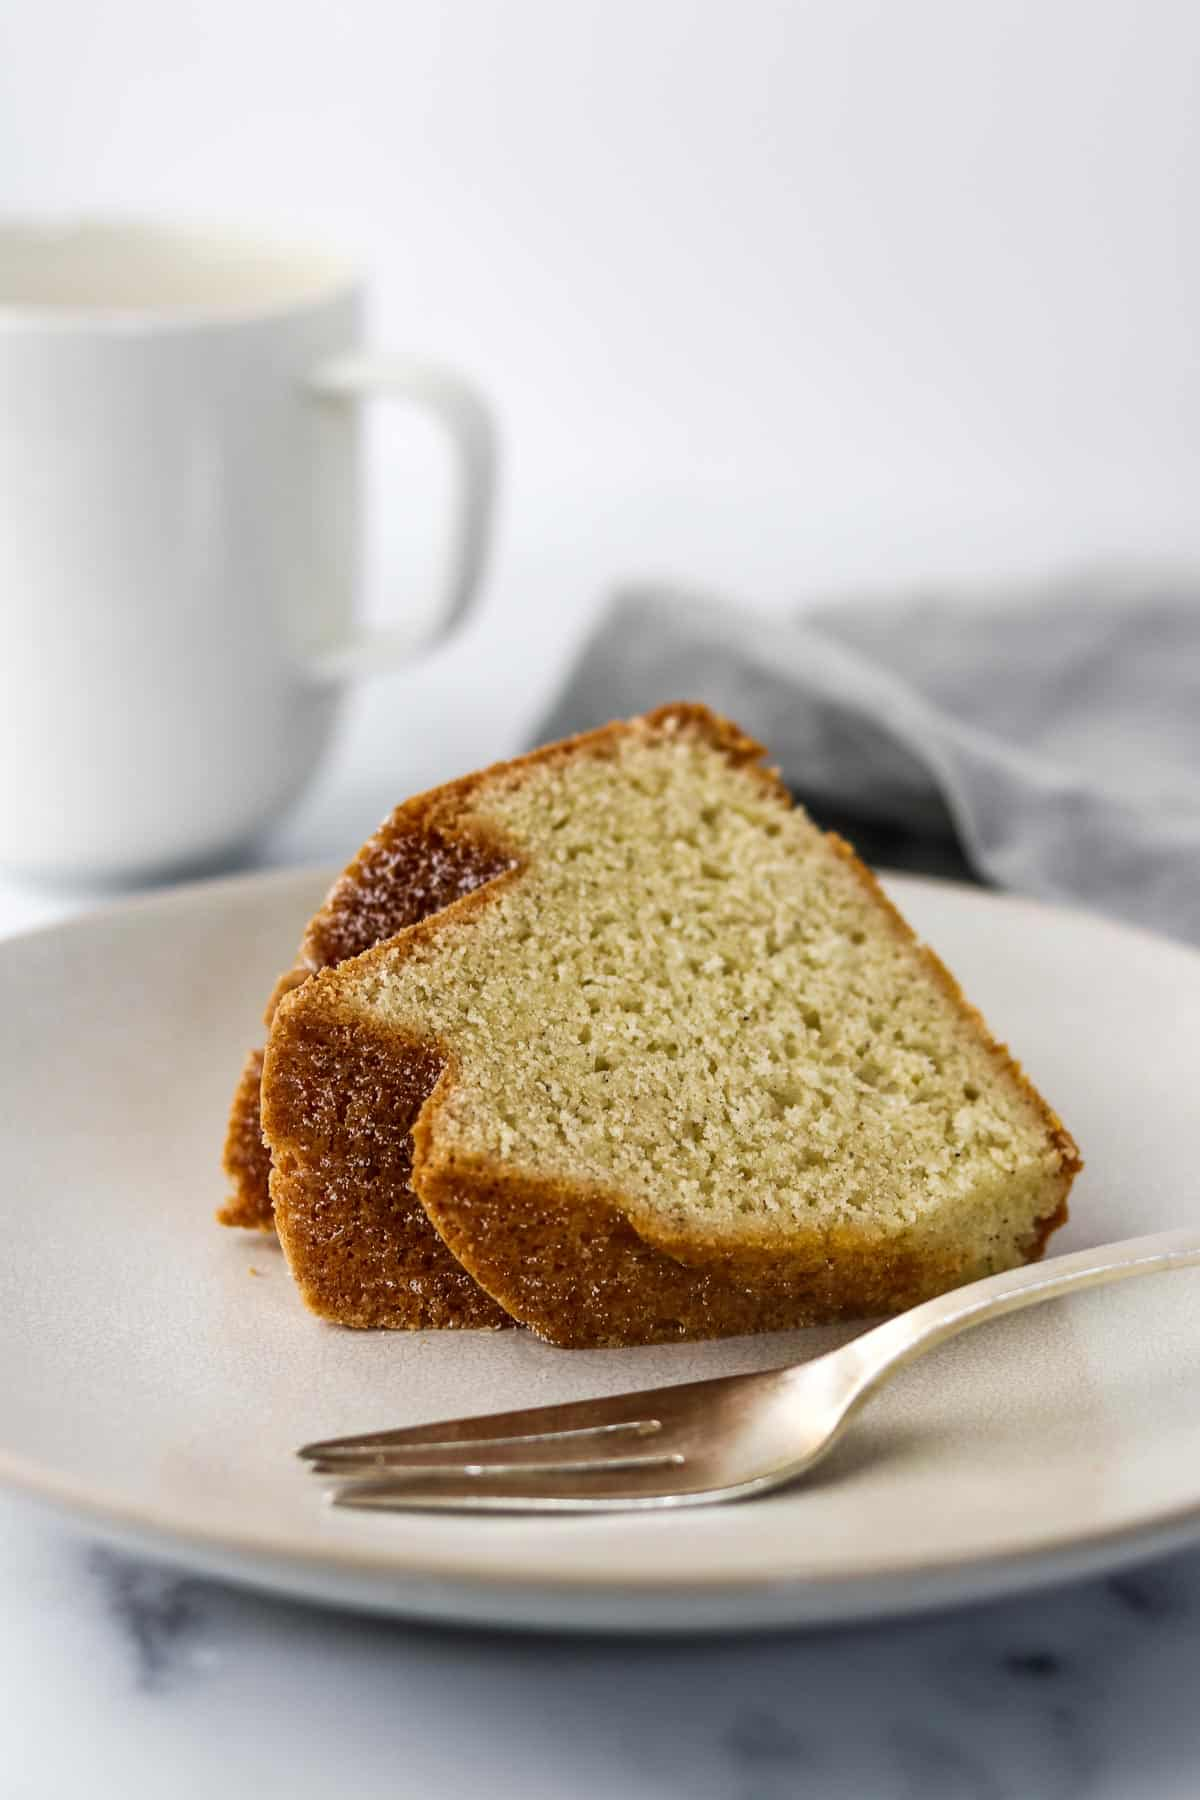 Slice of bundt cake on a plate with a fork.